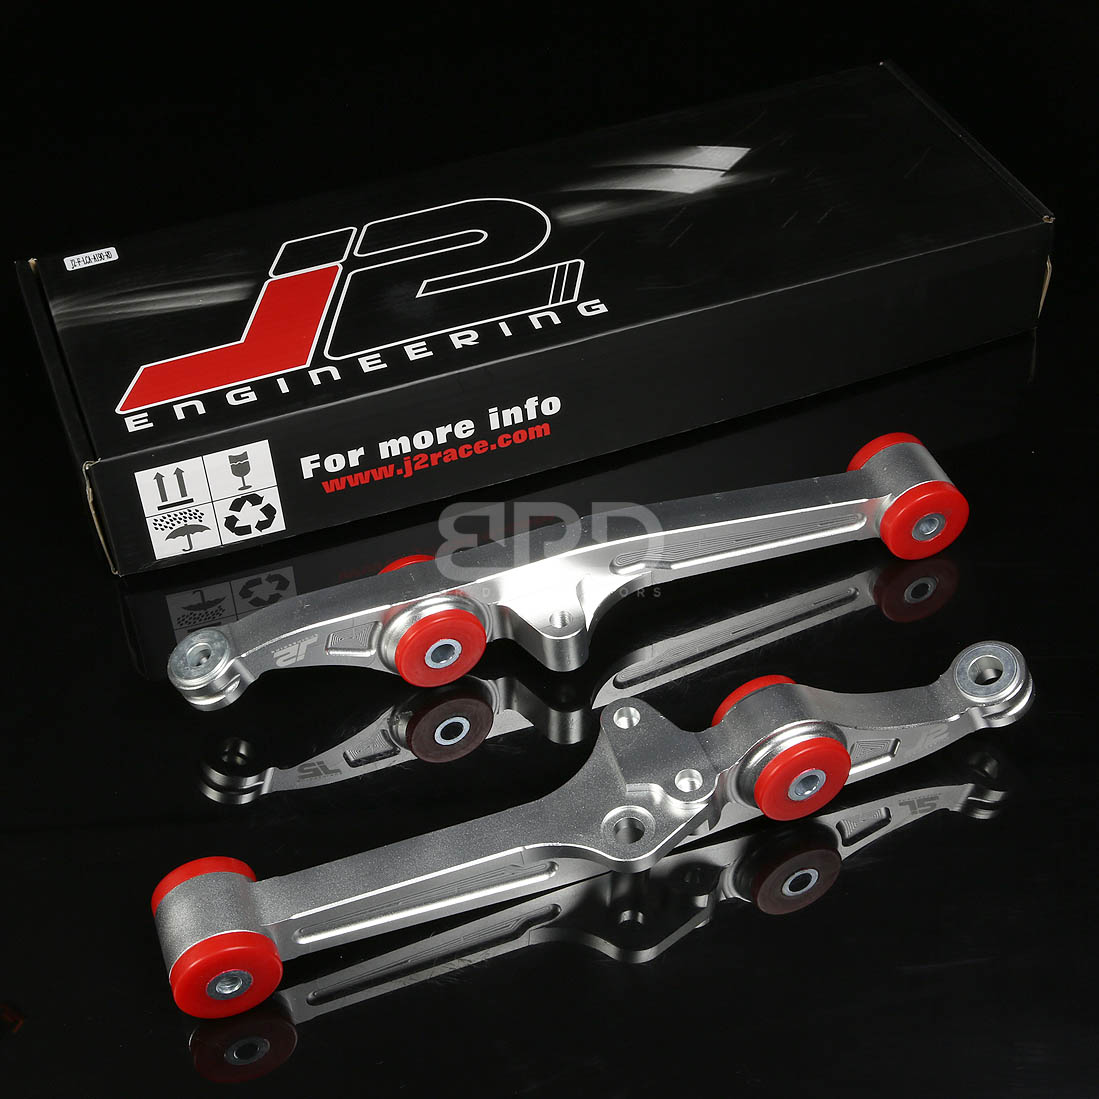 88 91 Honda Civic Crx And 90 93 Acura Integra Front Lower